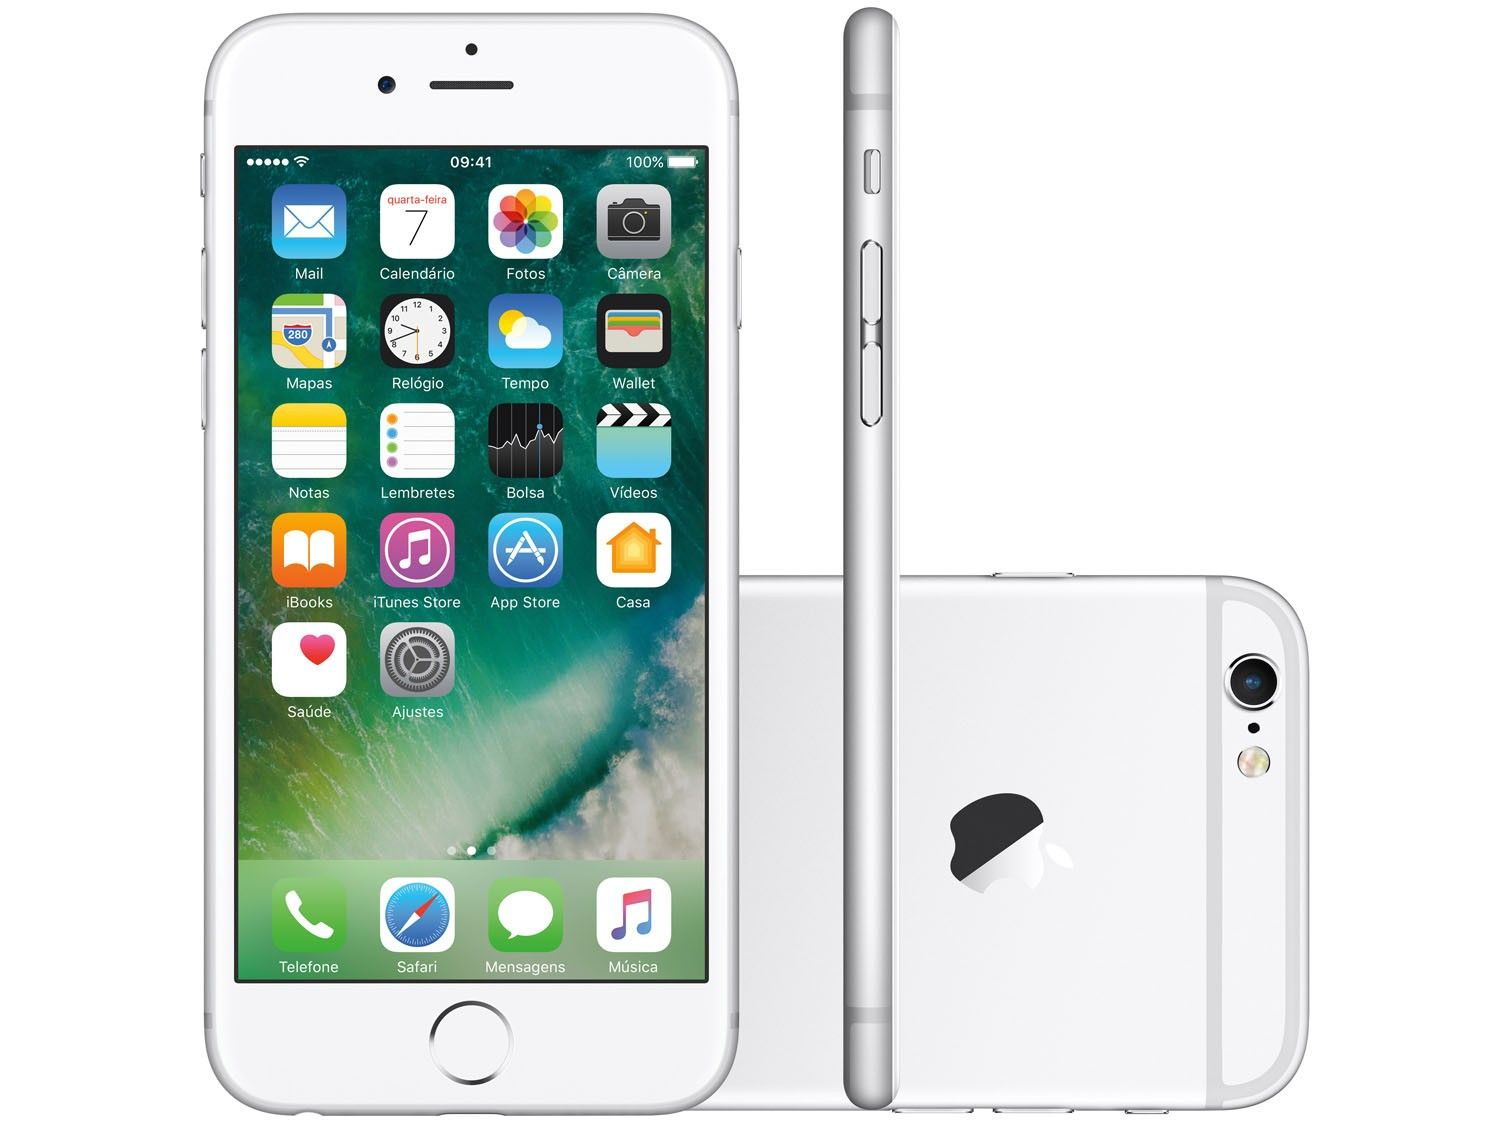 Iphone 6 128gb Tela 4.7' 8mp 4G Apple Prata Smartphone